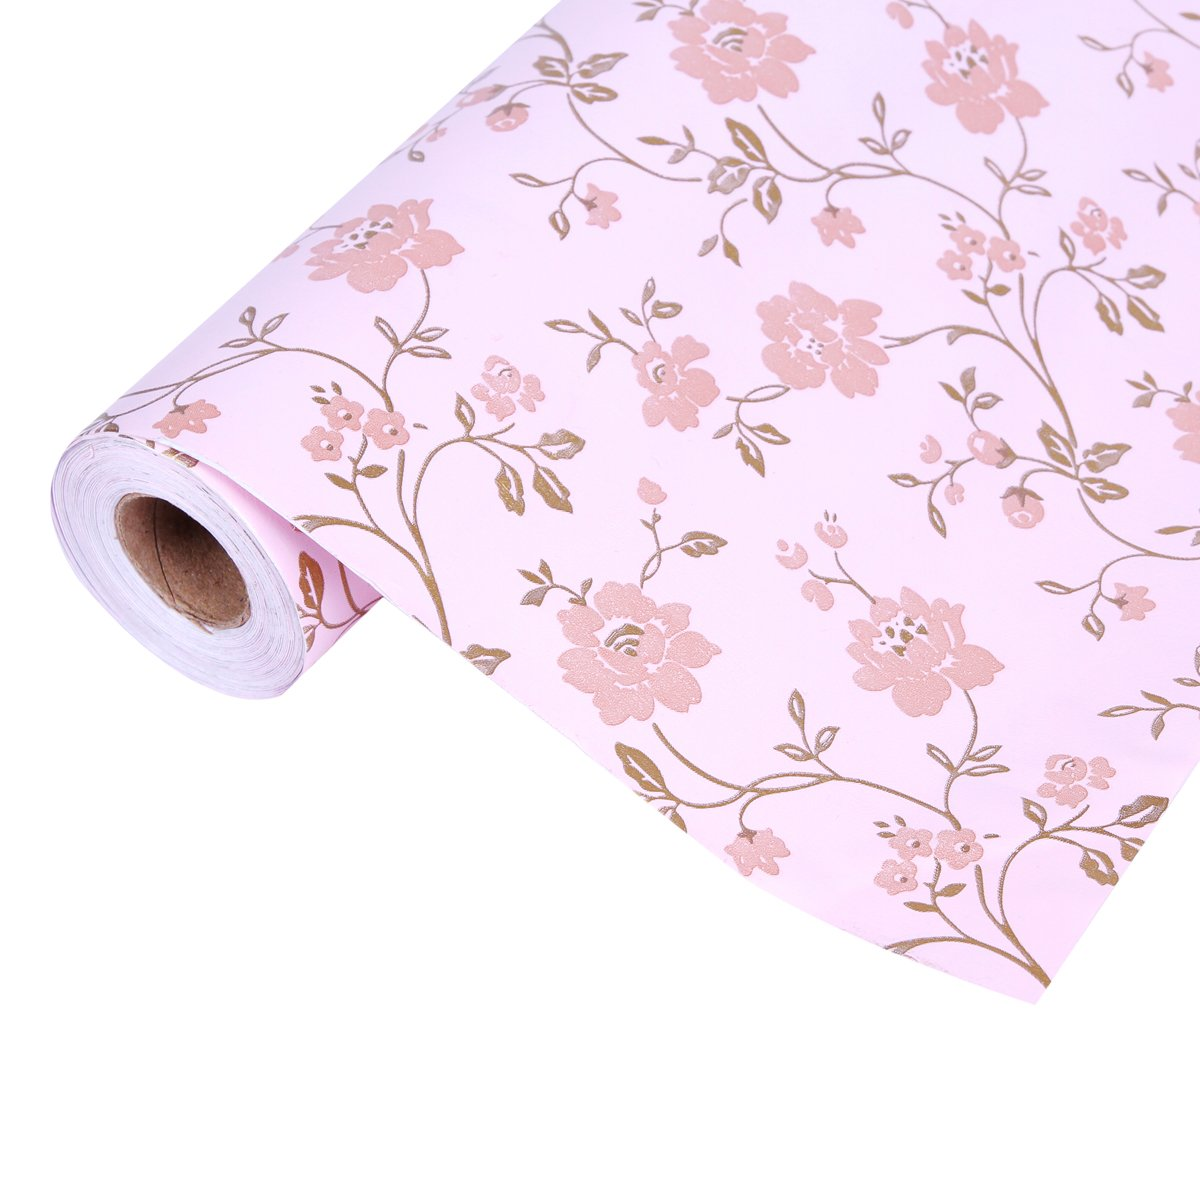 Damara Width 175 Country Style Flowers Removable Stick Wallpaper 1200x1200